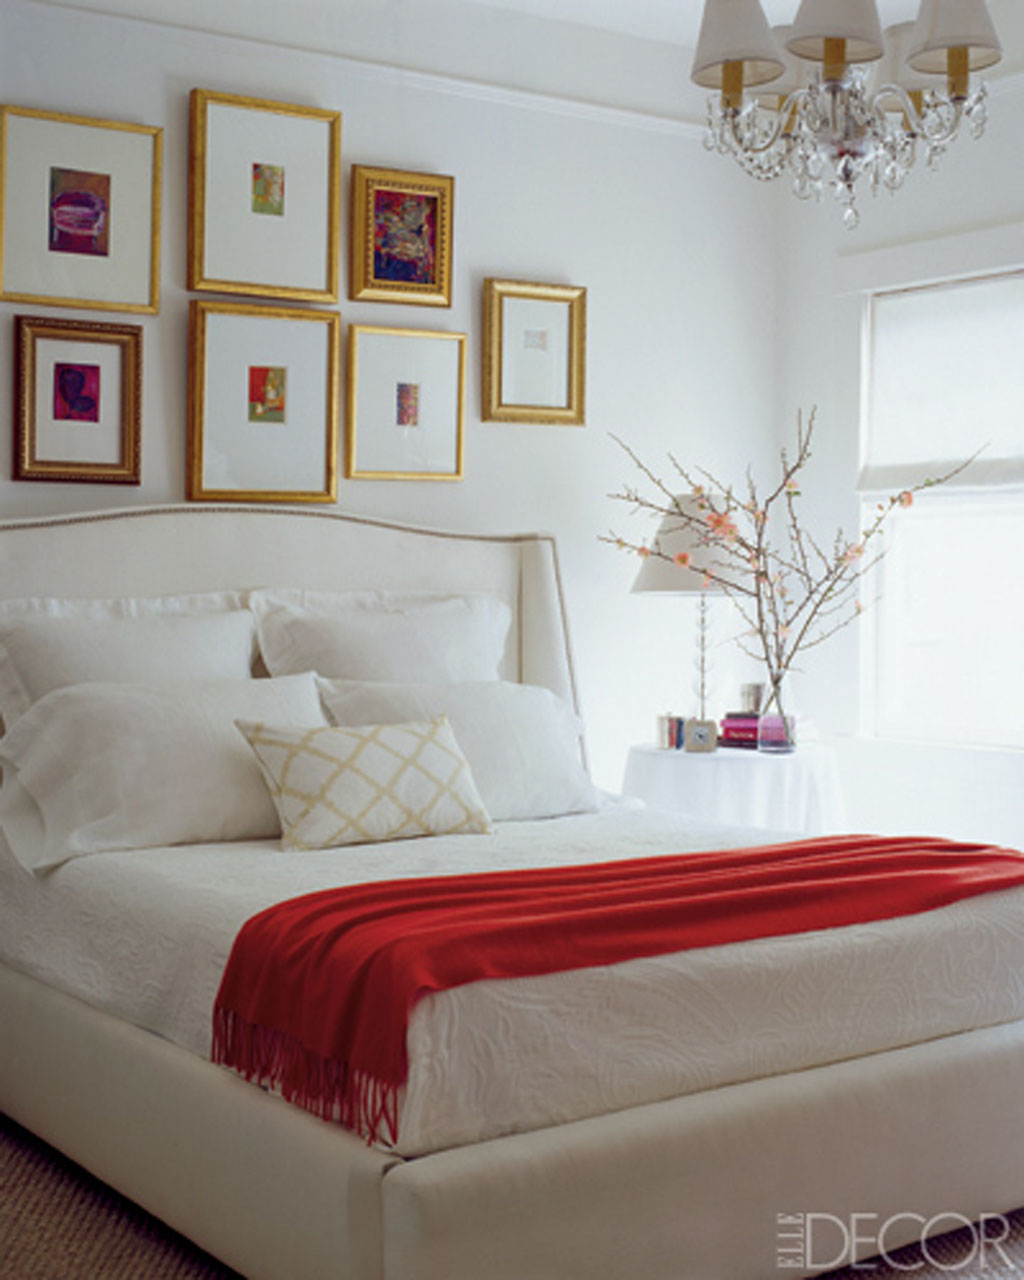 Black white and red bedroom ideas 5 small interior ideas for How to decorate a red bedroom